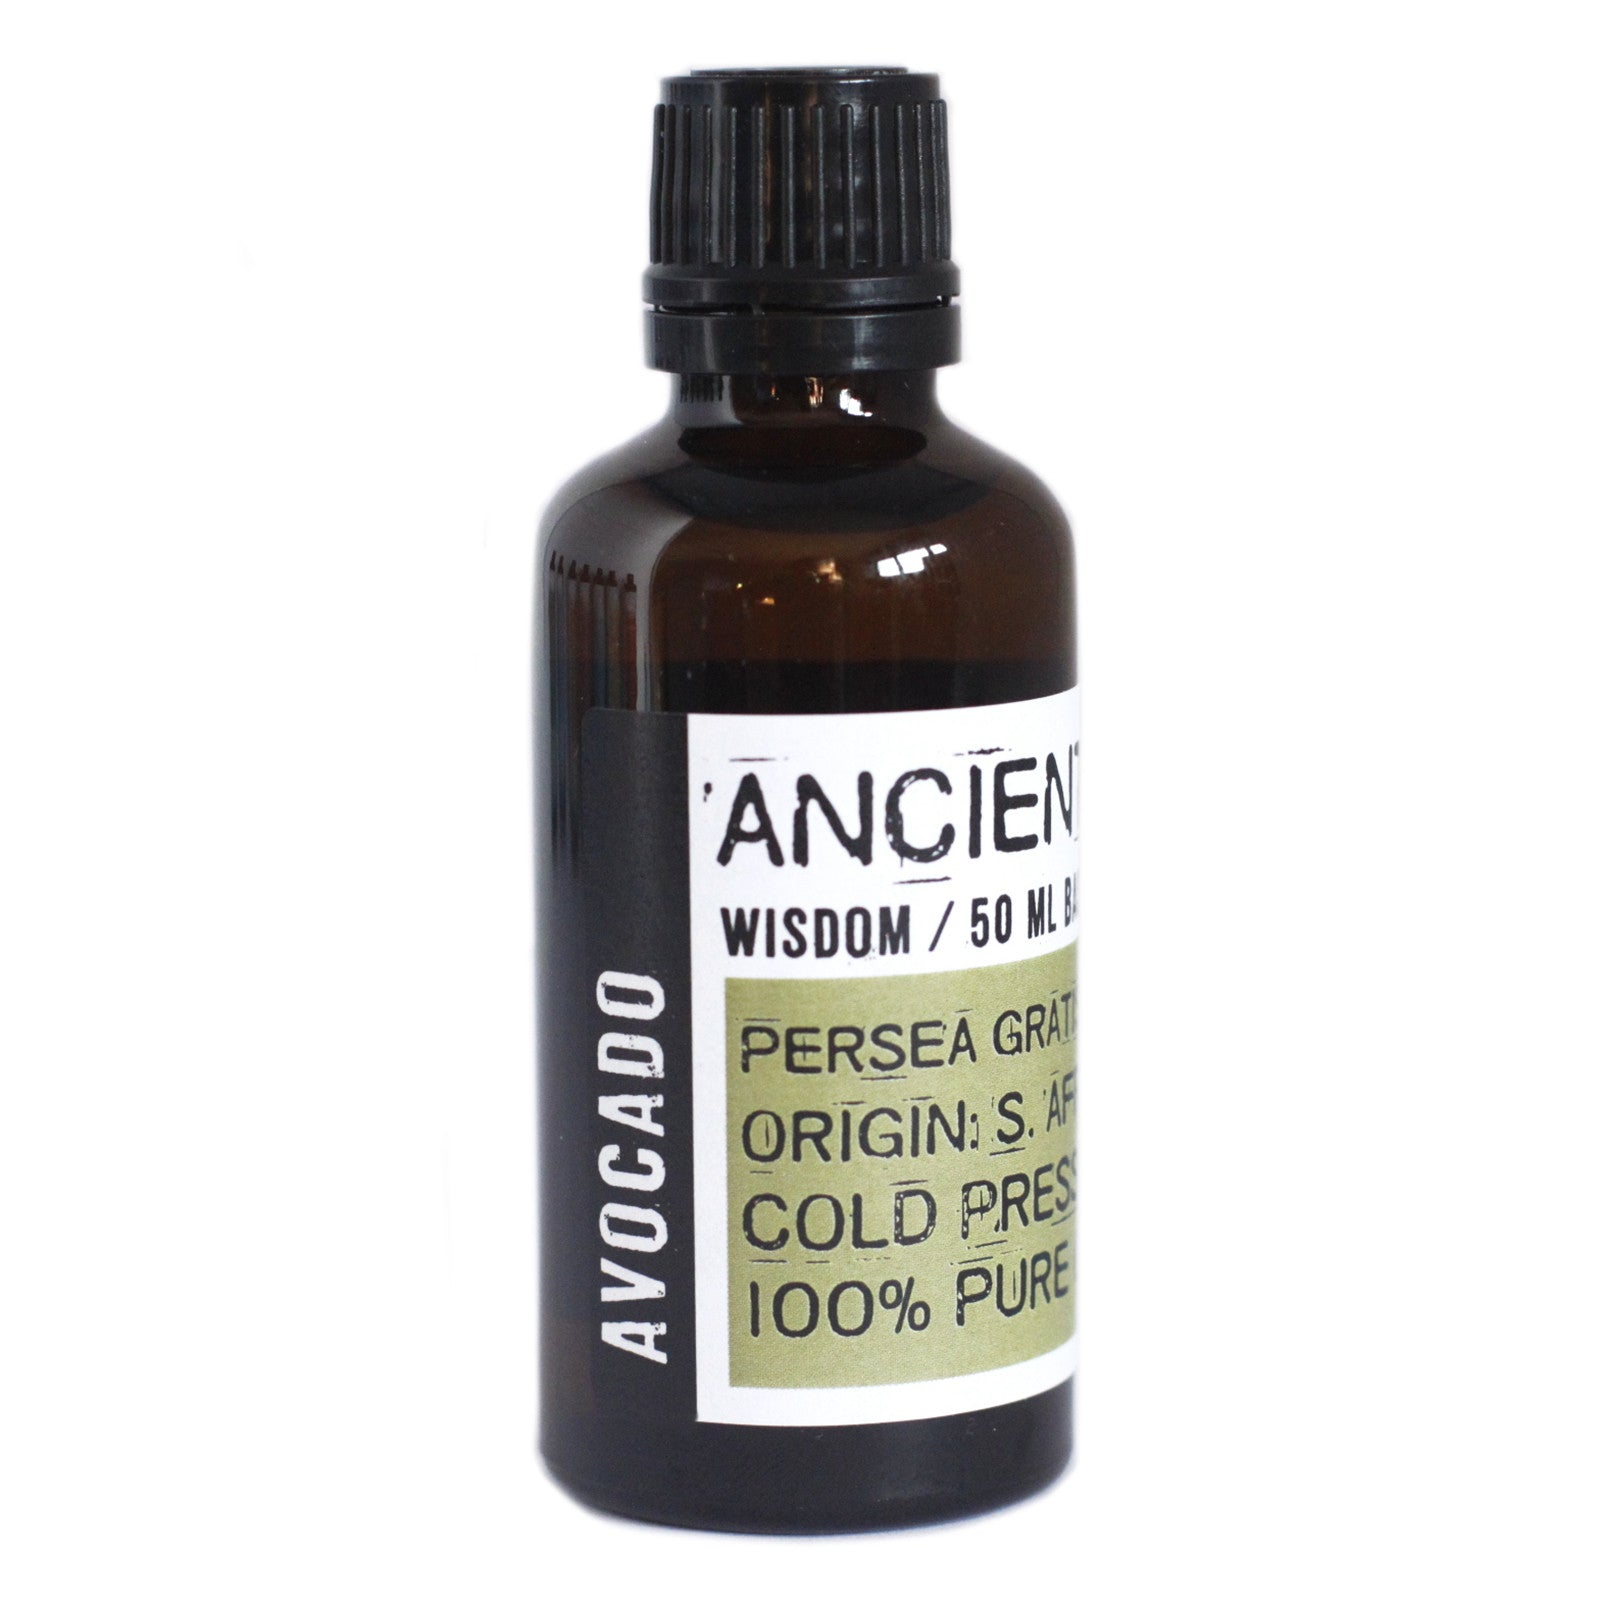 Avocado Oil - 50ml, Skin Care by Low Cost Gifts